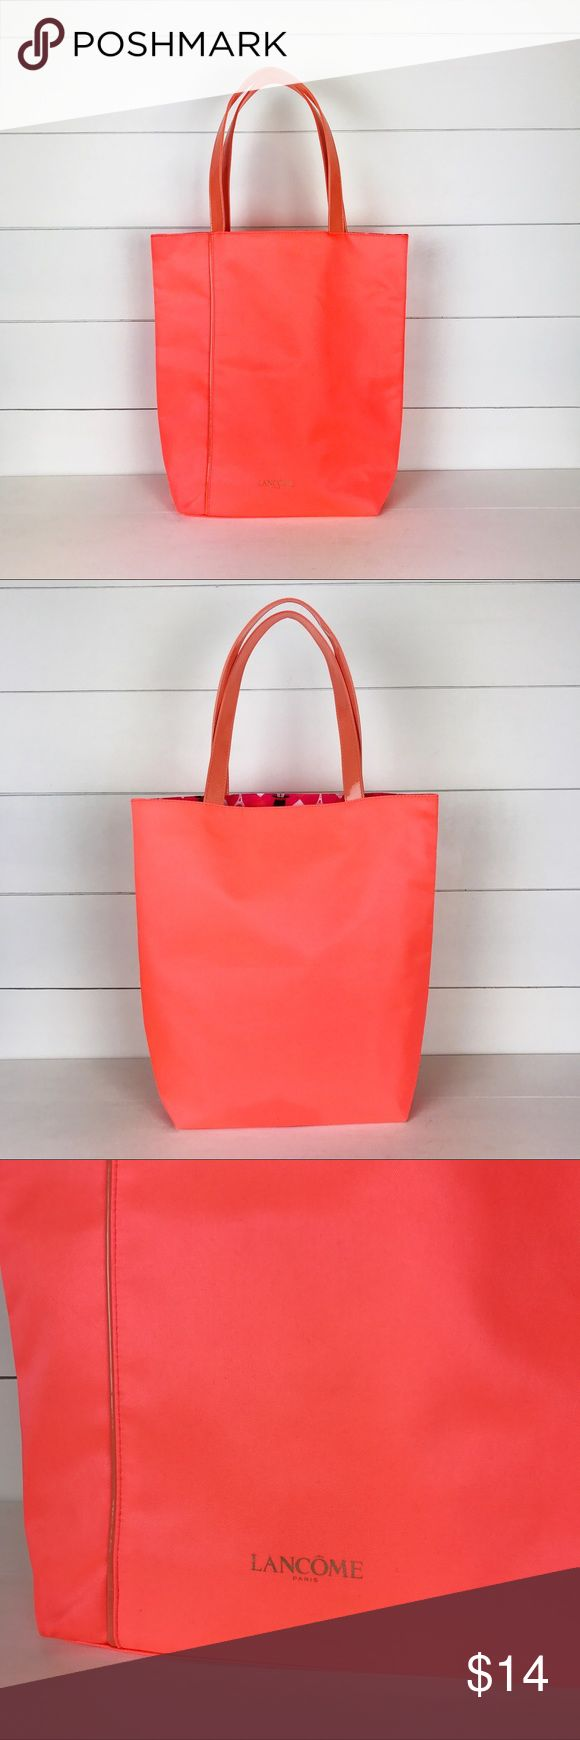 Lancome Bright Orange Tote Bag Lined Lips Paris Super cute bright orange Lancome tote bag.  Pristine condition with cute straps and a liner with Eiffel Tower, lipstick, rose and top hat pattern. Lancome Bags Totes